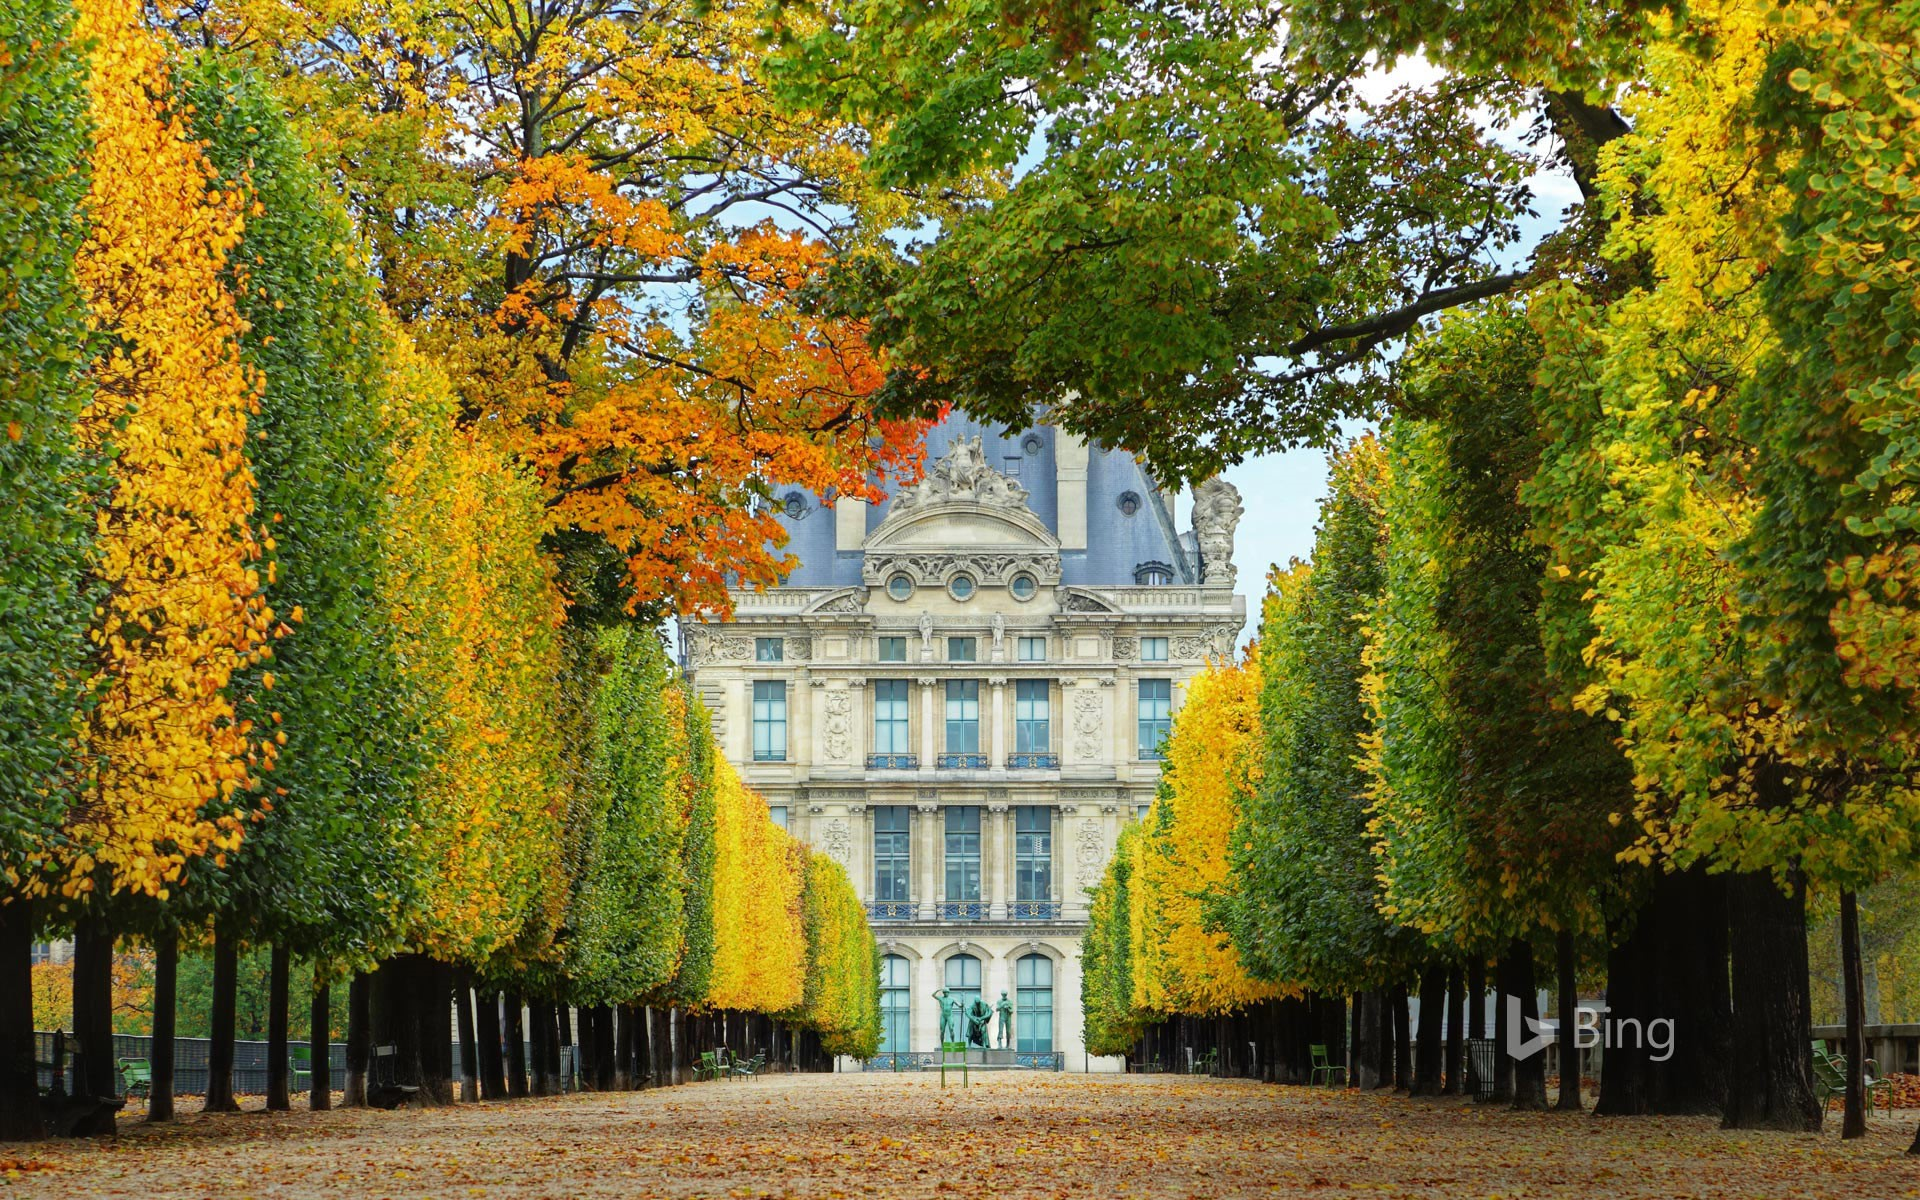 Jardin des Tuileries in autumn, leading to the Louvre Museum in Paris, France (© Brian A. Jackson/Getty Images Plus)